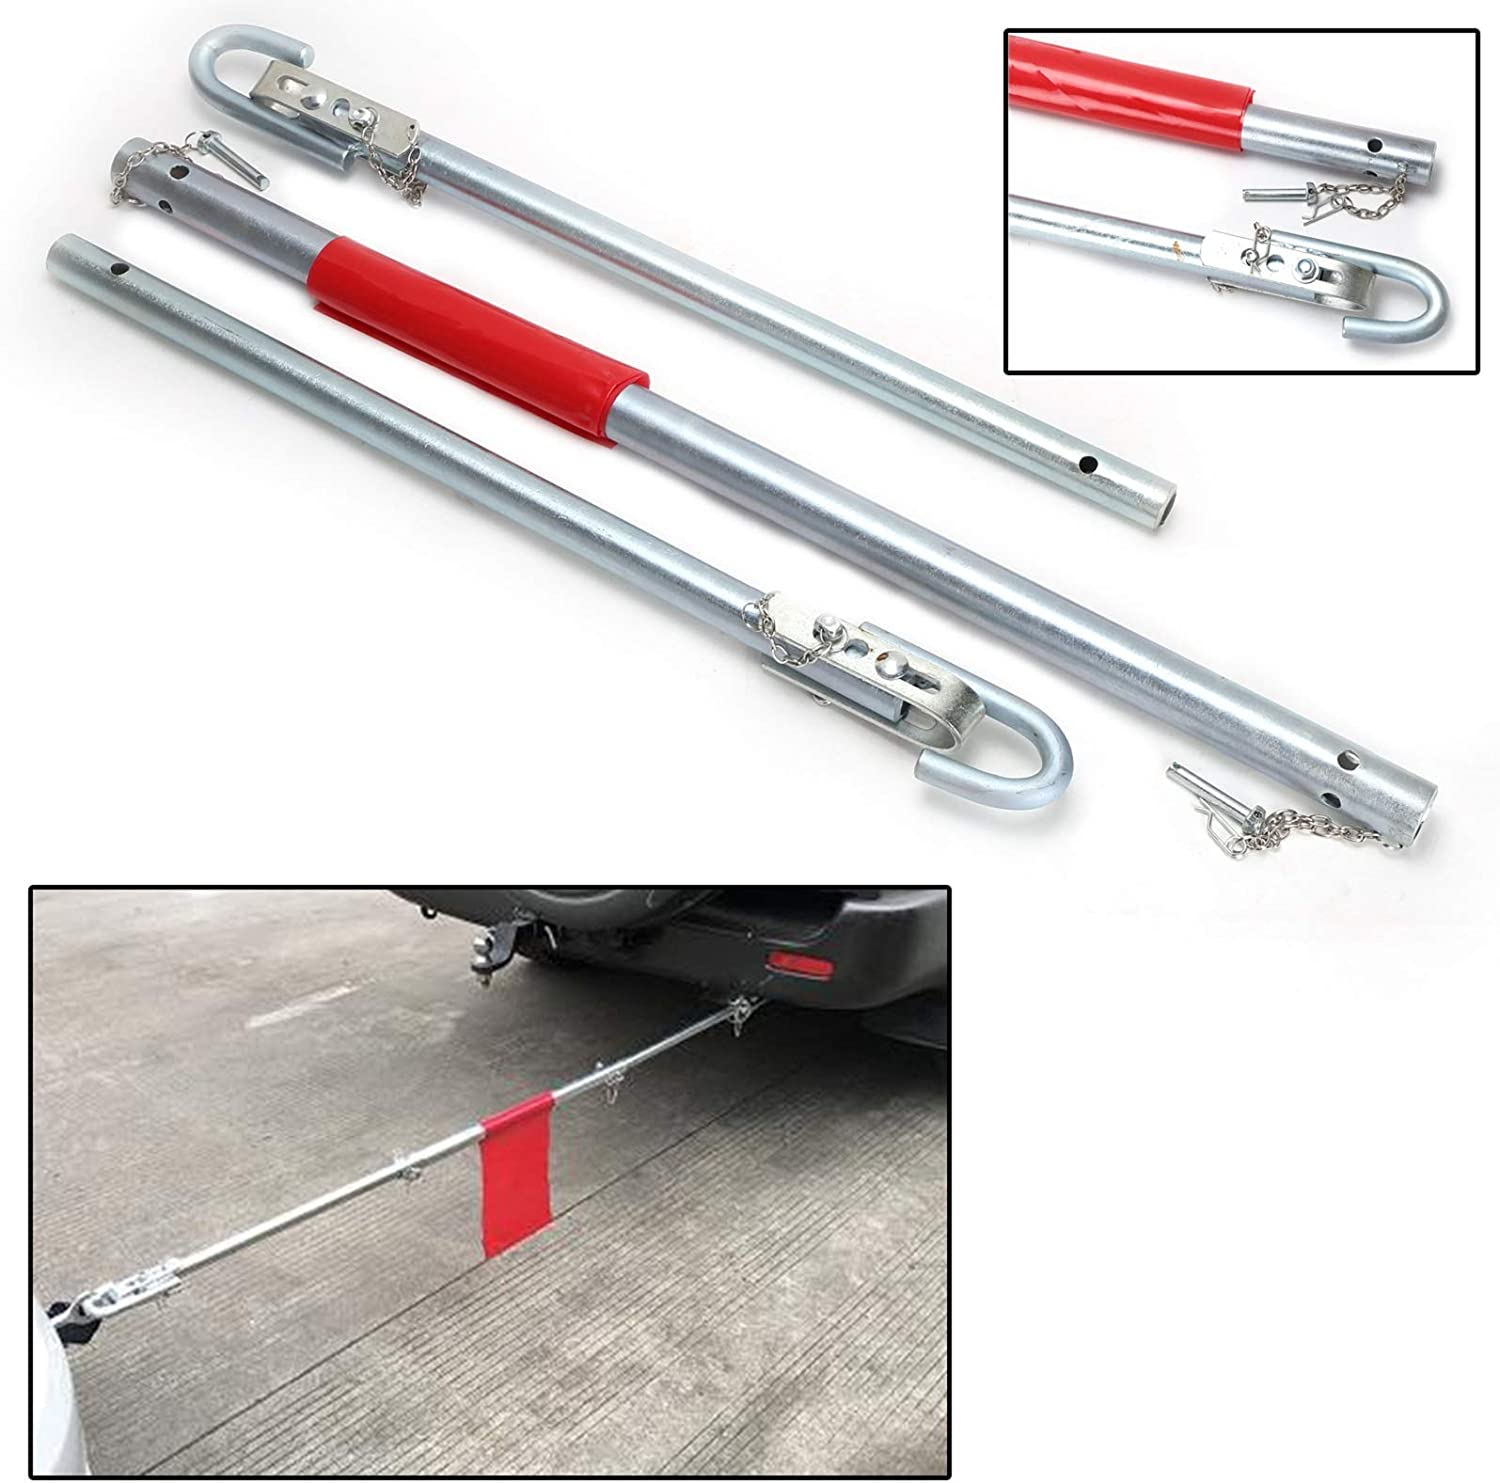 50 100mm Heavy Duty Vehicle Emergency Breakdown Rescue Ball Coupling Holdfiturn 2 Ton Recovery Tow Bar 1000